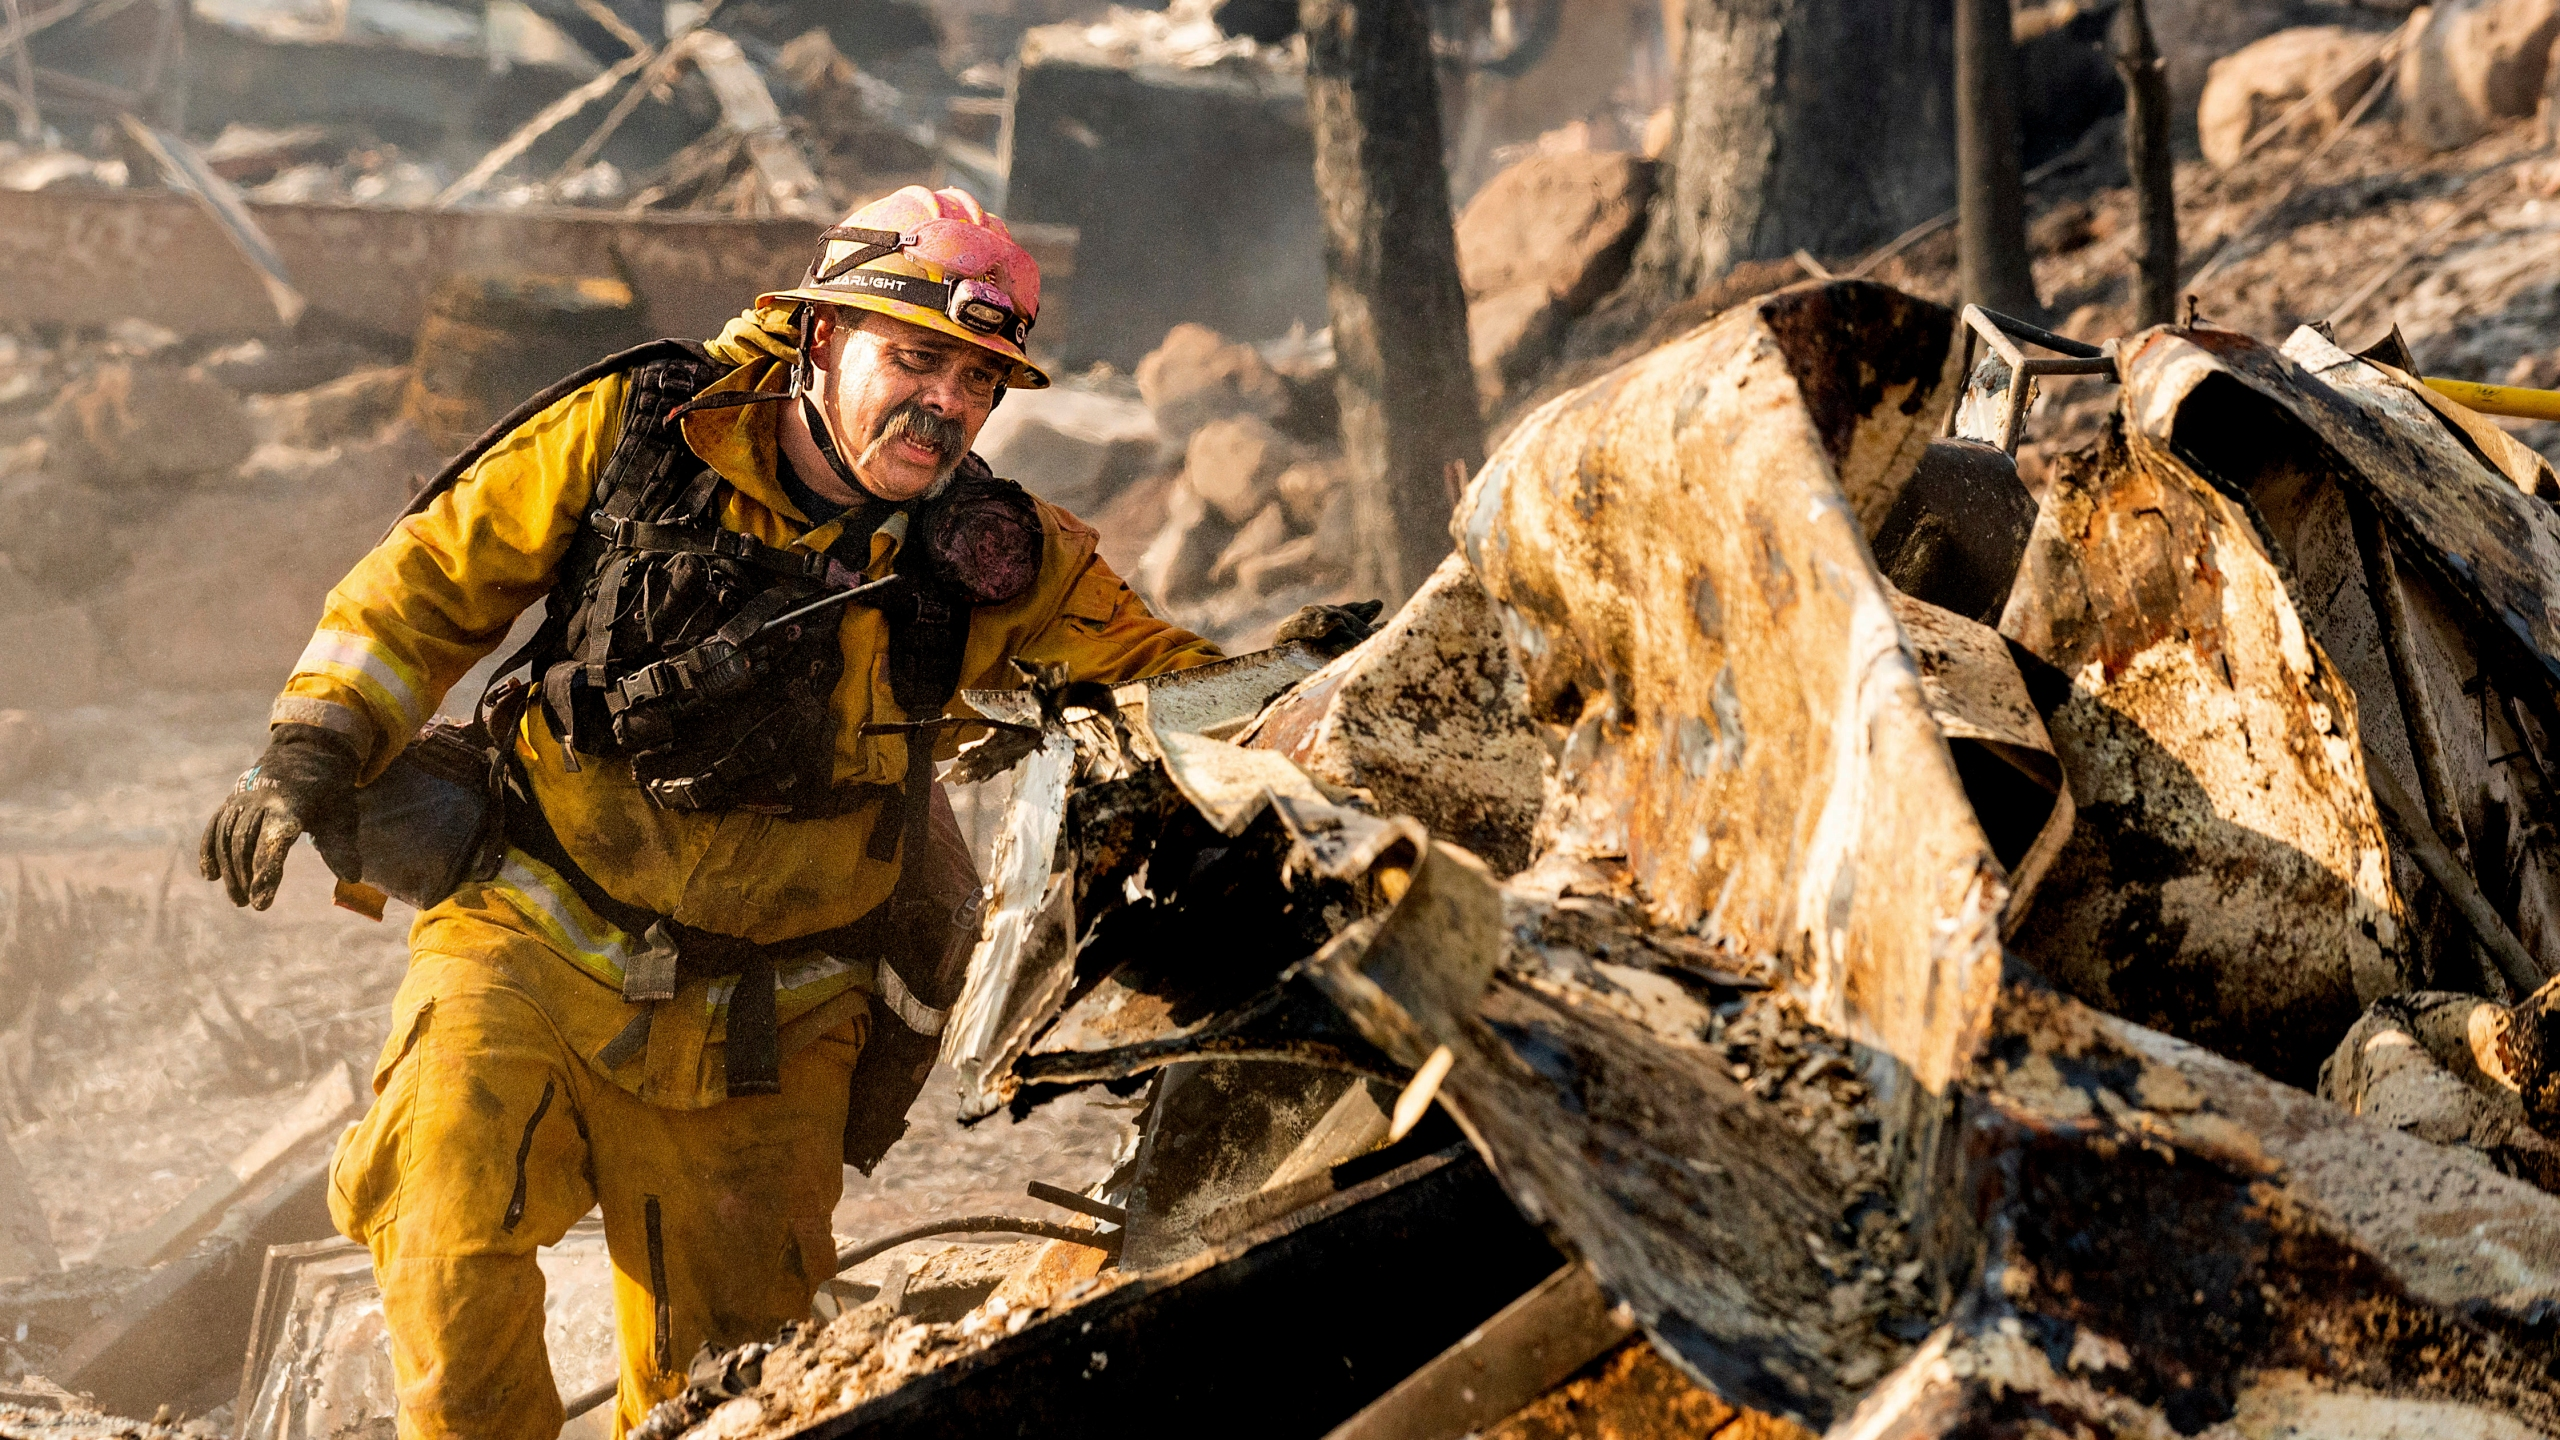 Firefighter Jesse Viescas searches through a residence at Cache Creek Mobile Home Estates where the Cache Fire leveled dozens of homes, Wednesday, Aug. 18, 2021, in Clearlake, Calif. (AP Photo/Noah Berger)